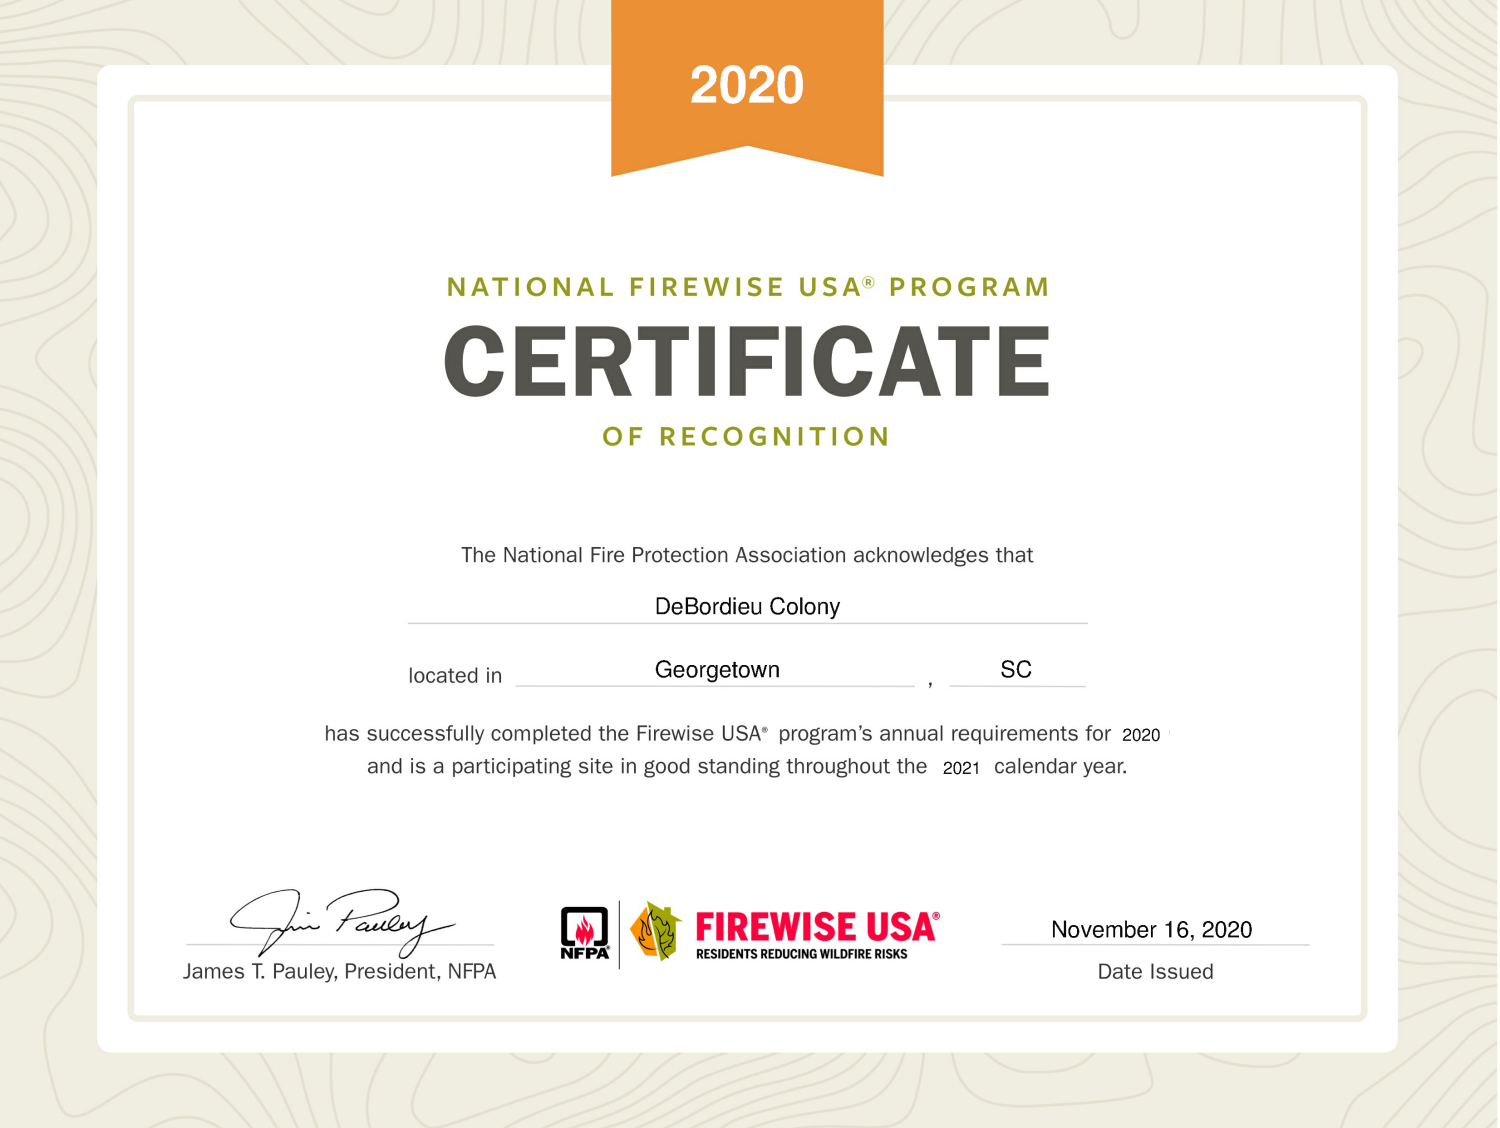 2020 Firewise USA status awarded